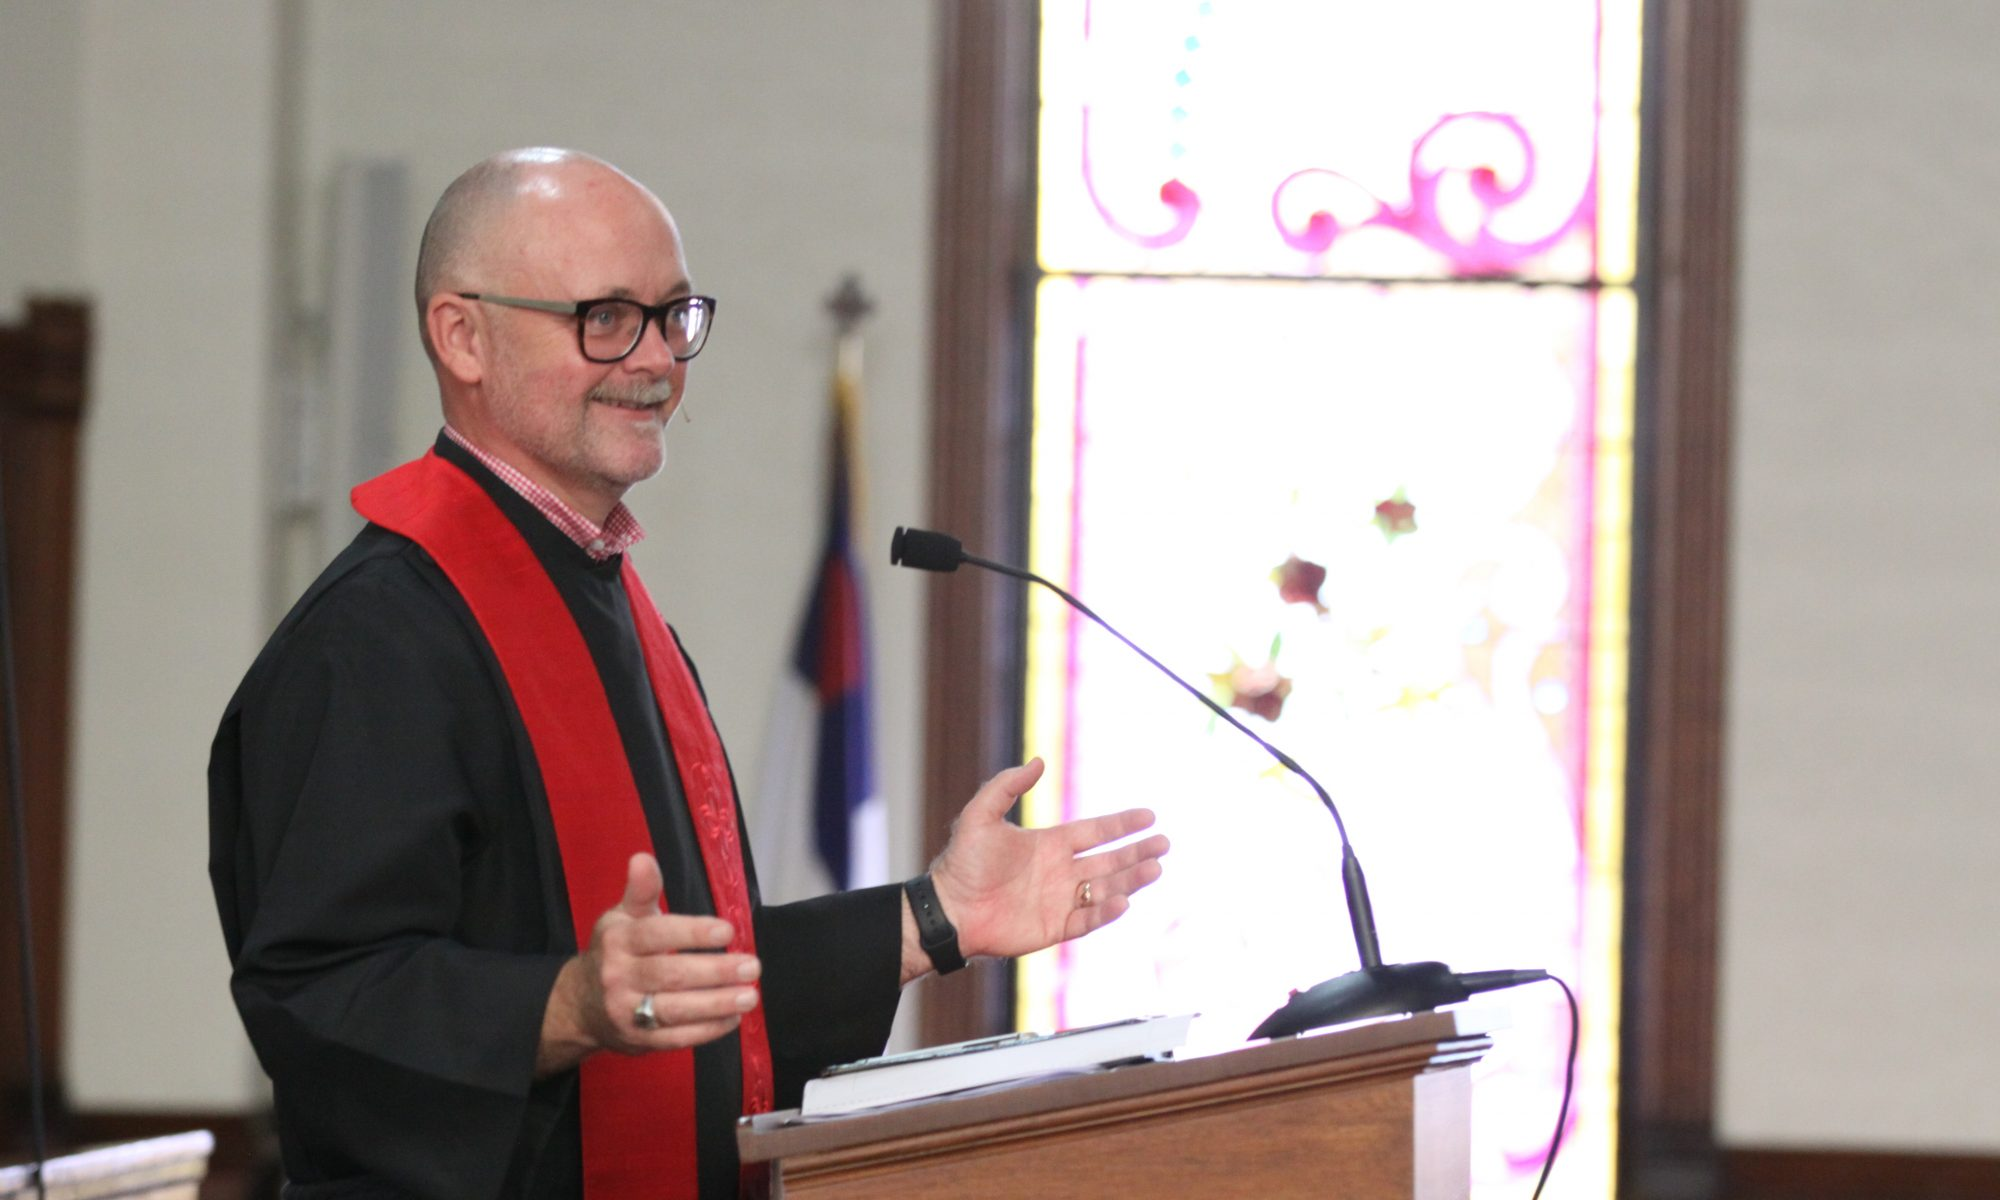 pastor john at the pulpit